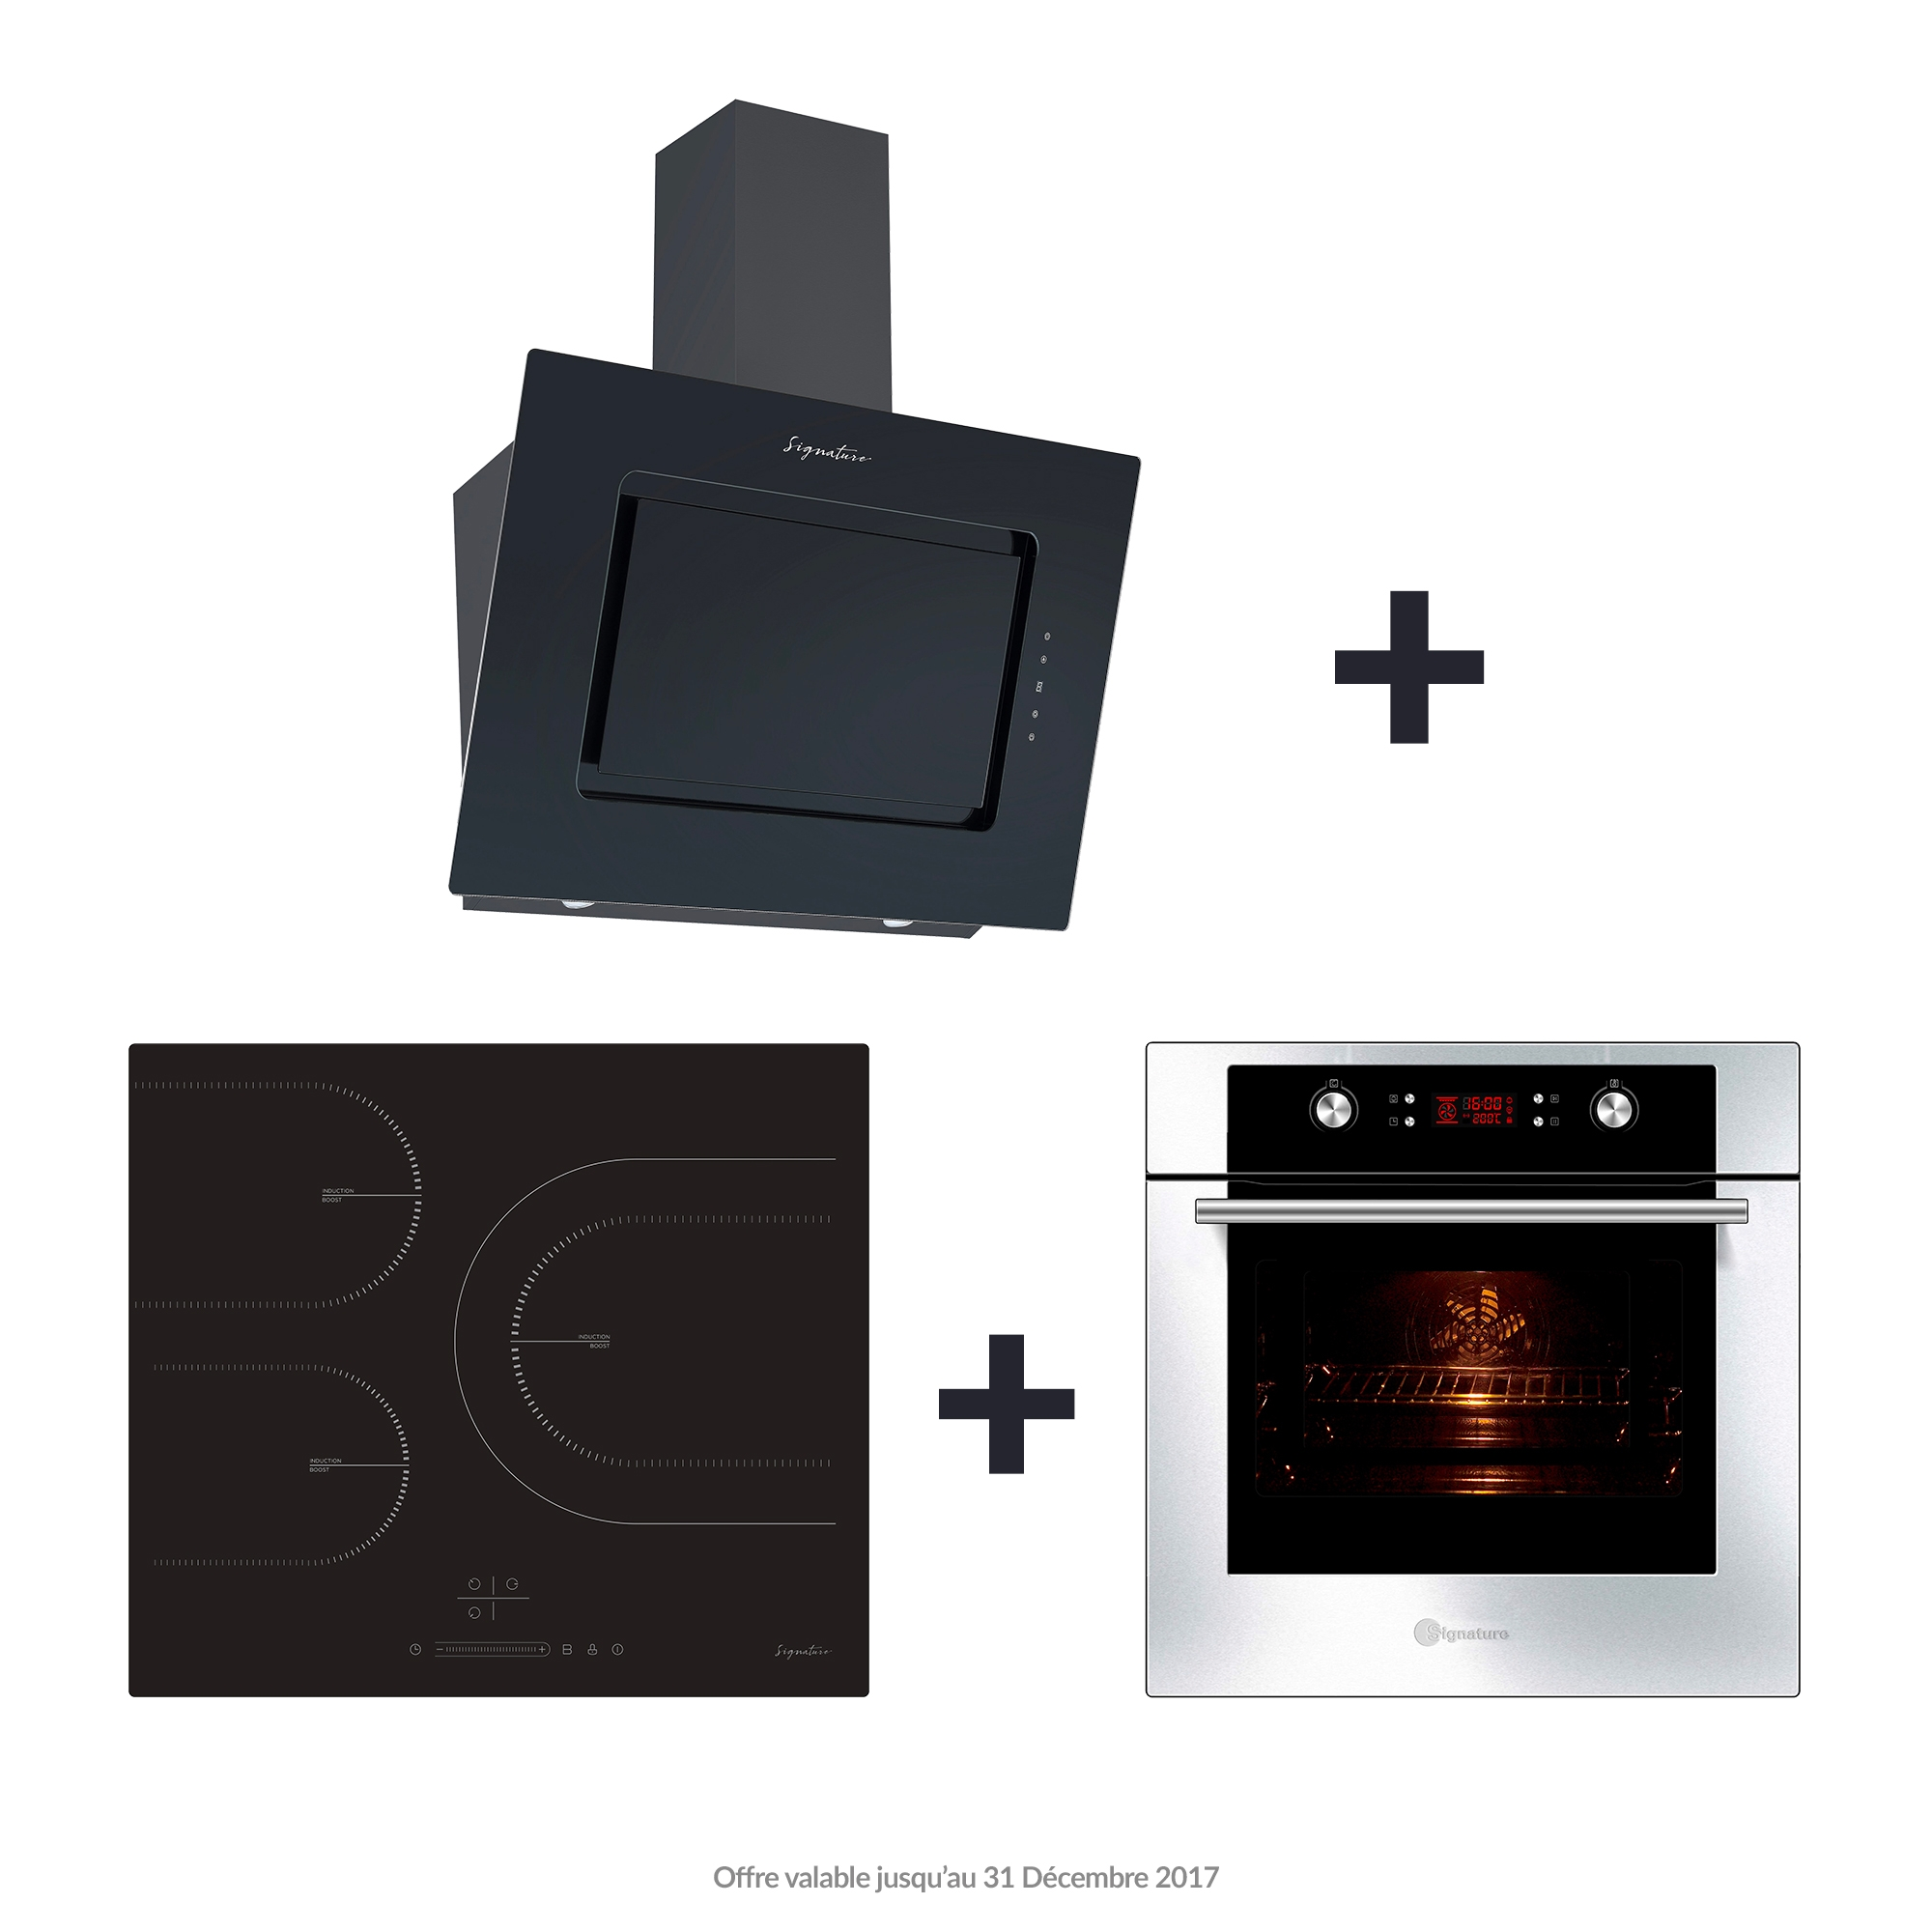 Offre Encastrable SIGNATURE : Hotte + Table induction + Four encastrable